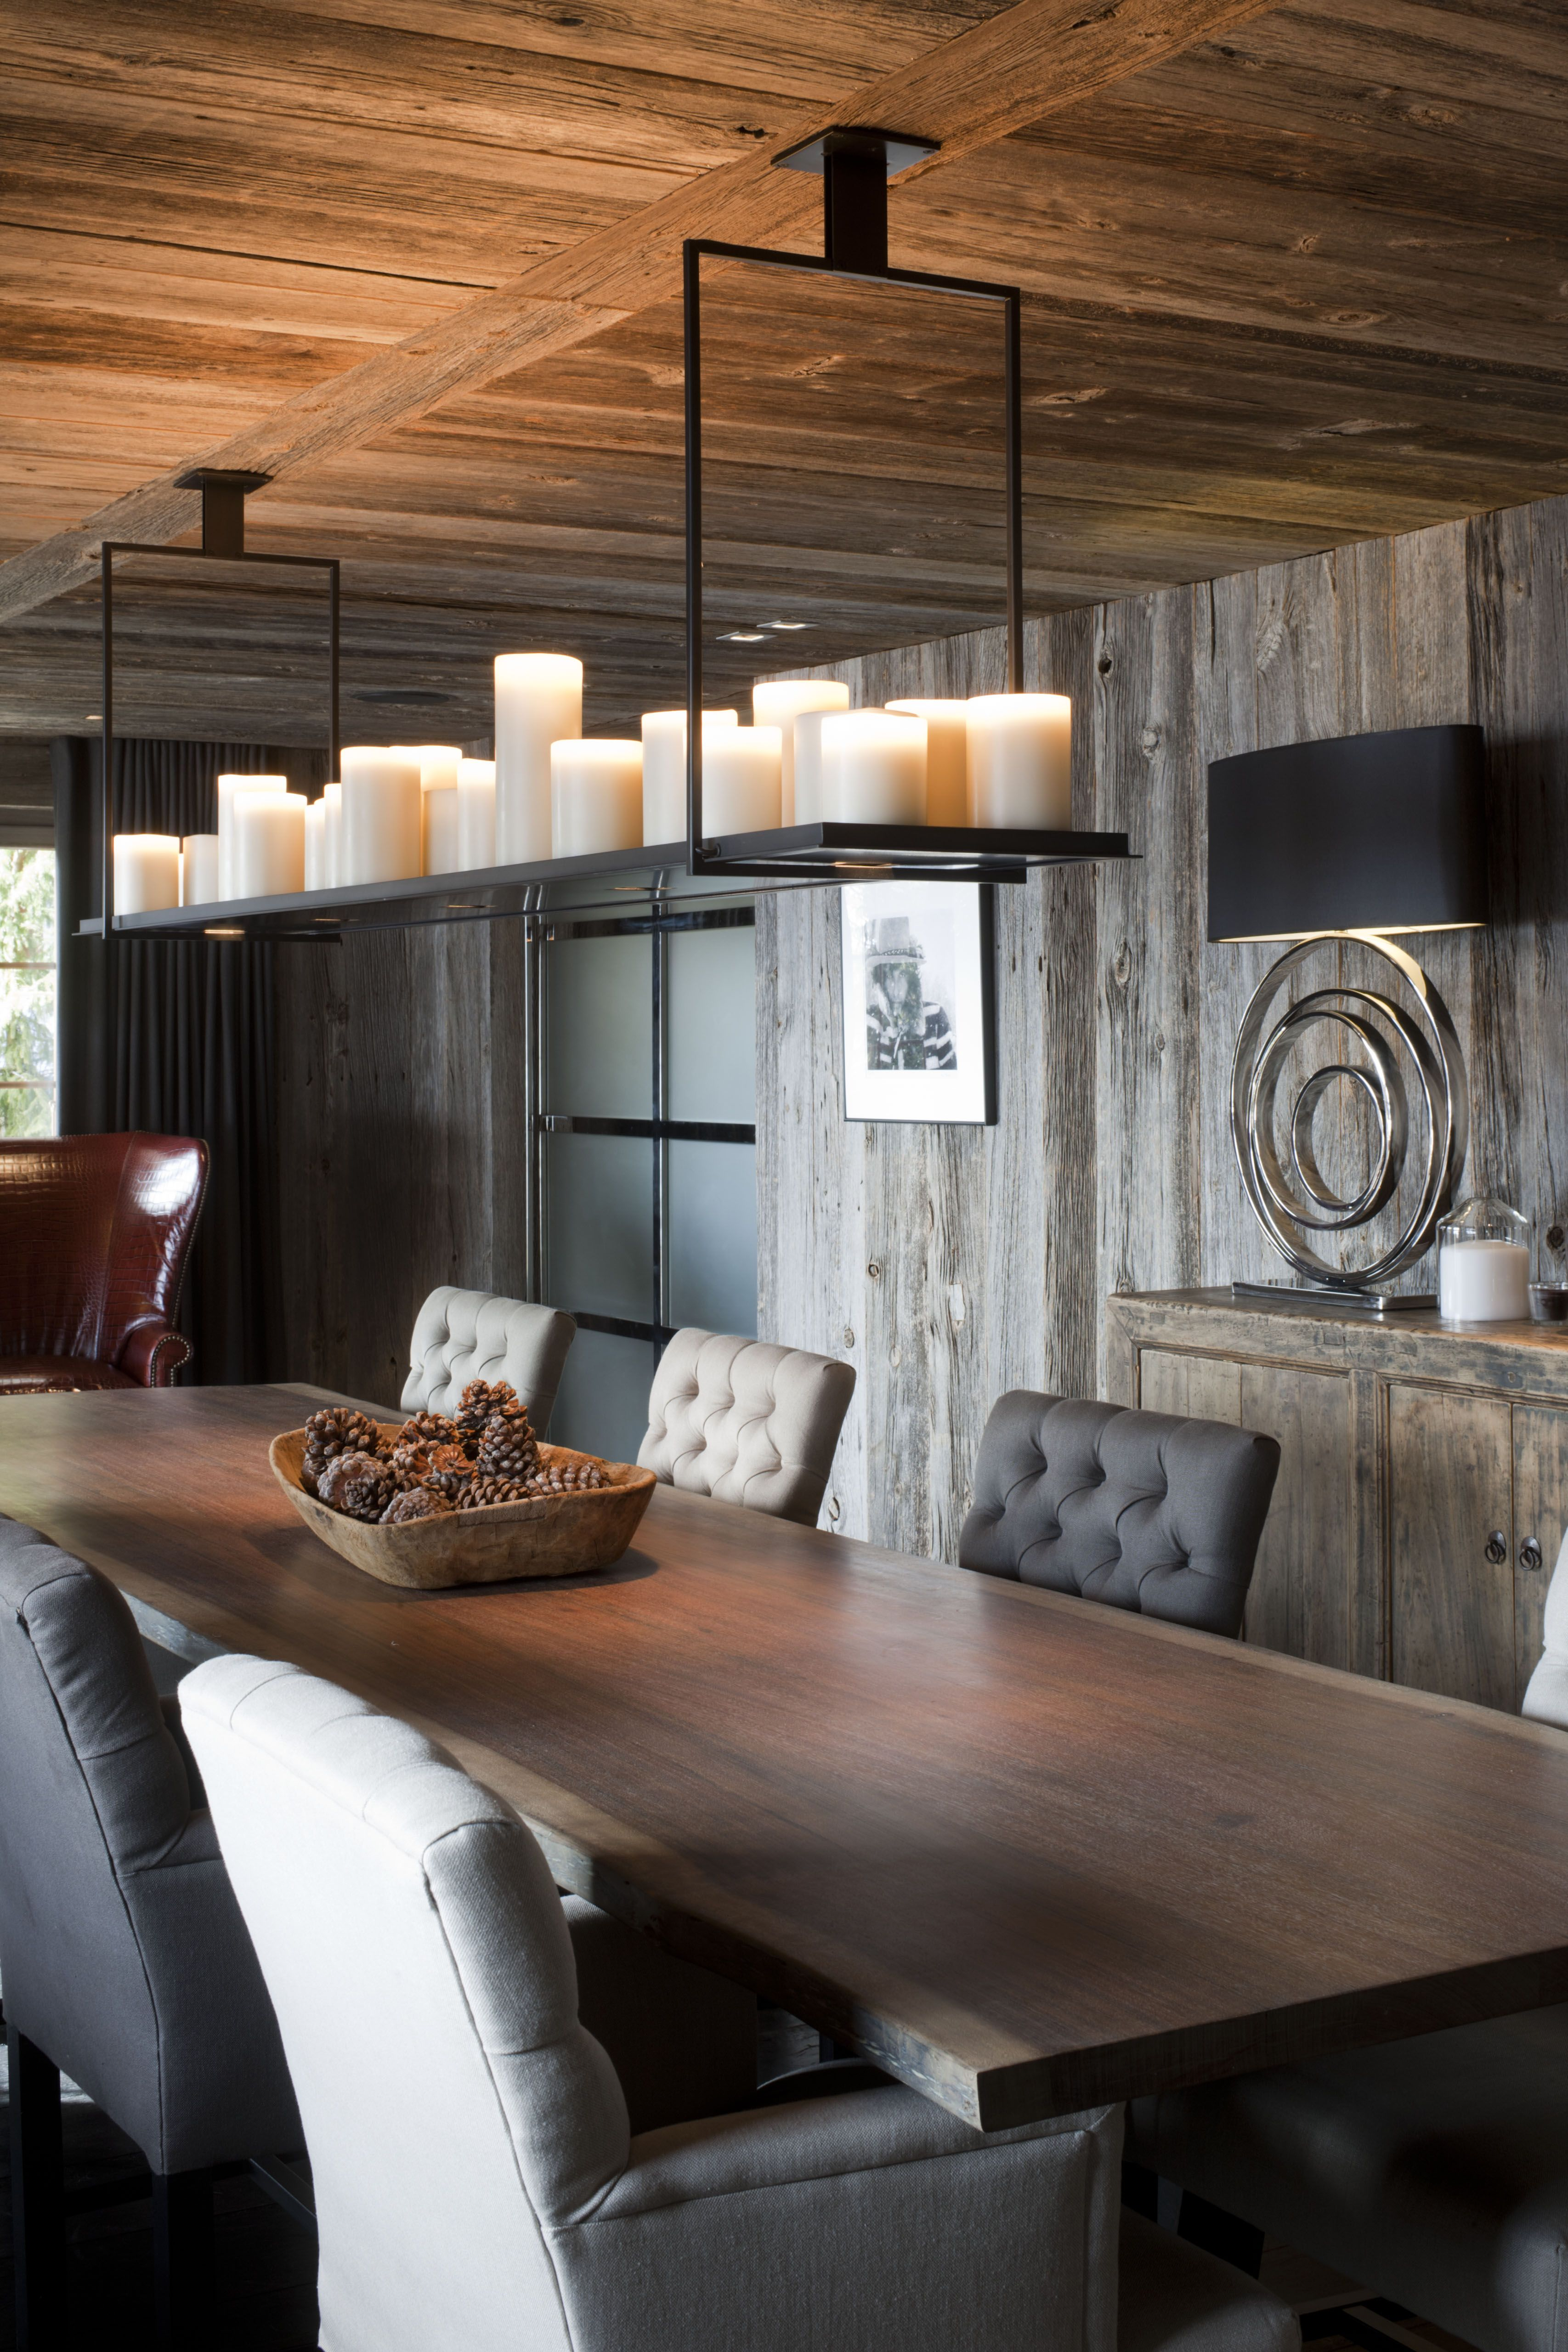 Beleuchtung Esszimmer Landhaus Log House And Transitional Furniture Lamps Pinterest Hütte